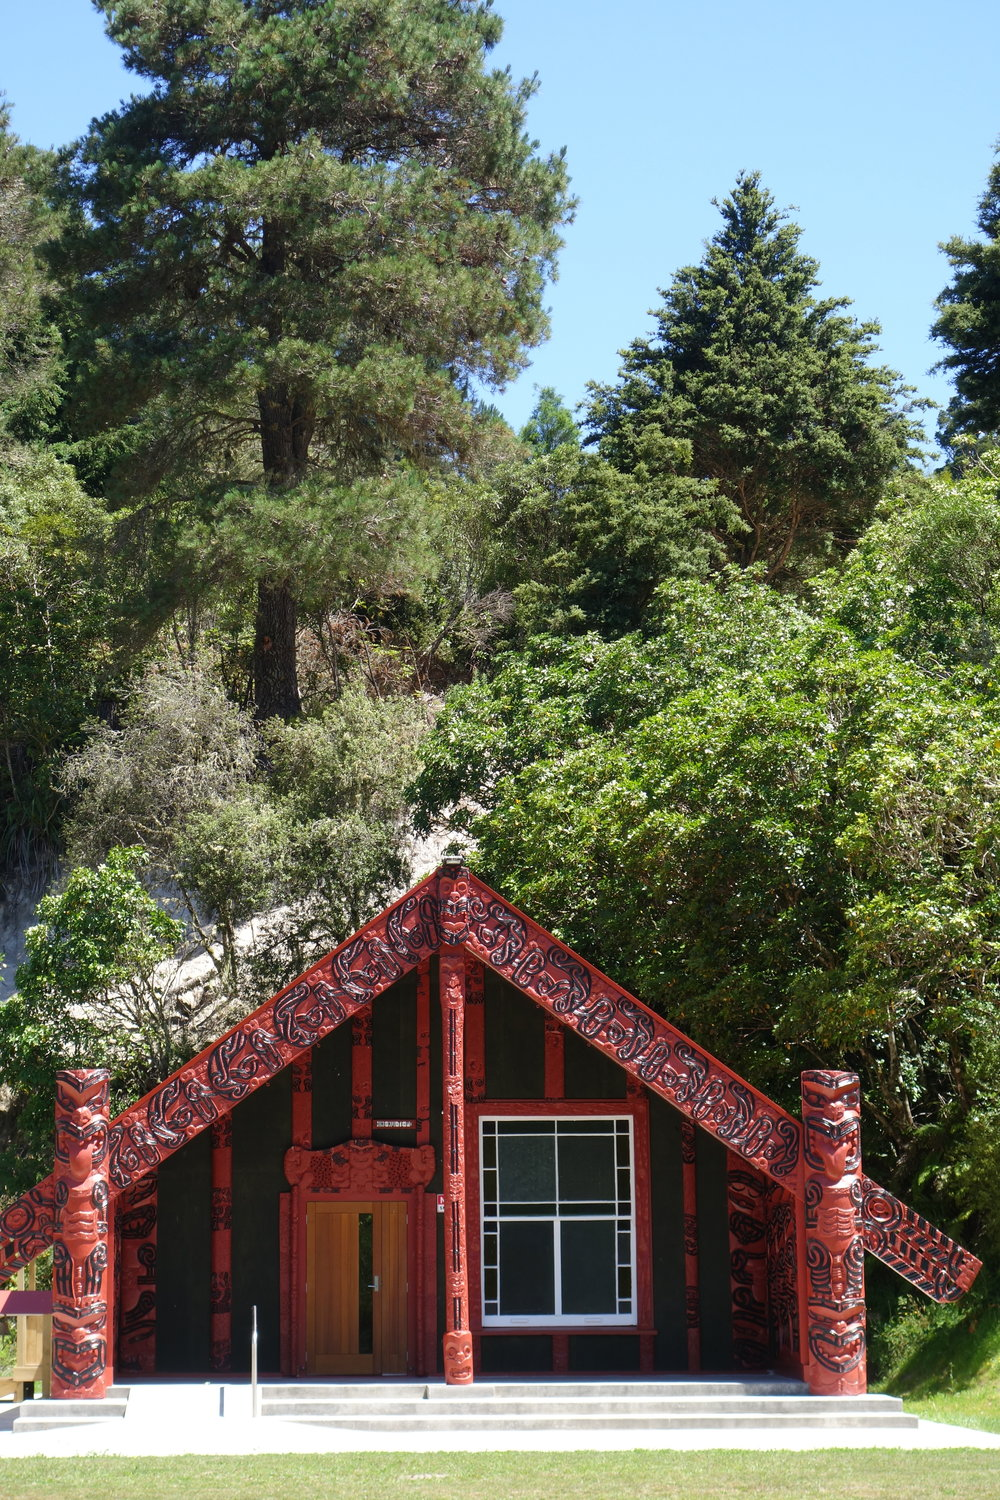 A Wharenui ( Maori community/meeting house ) on the road out.